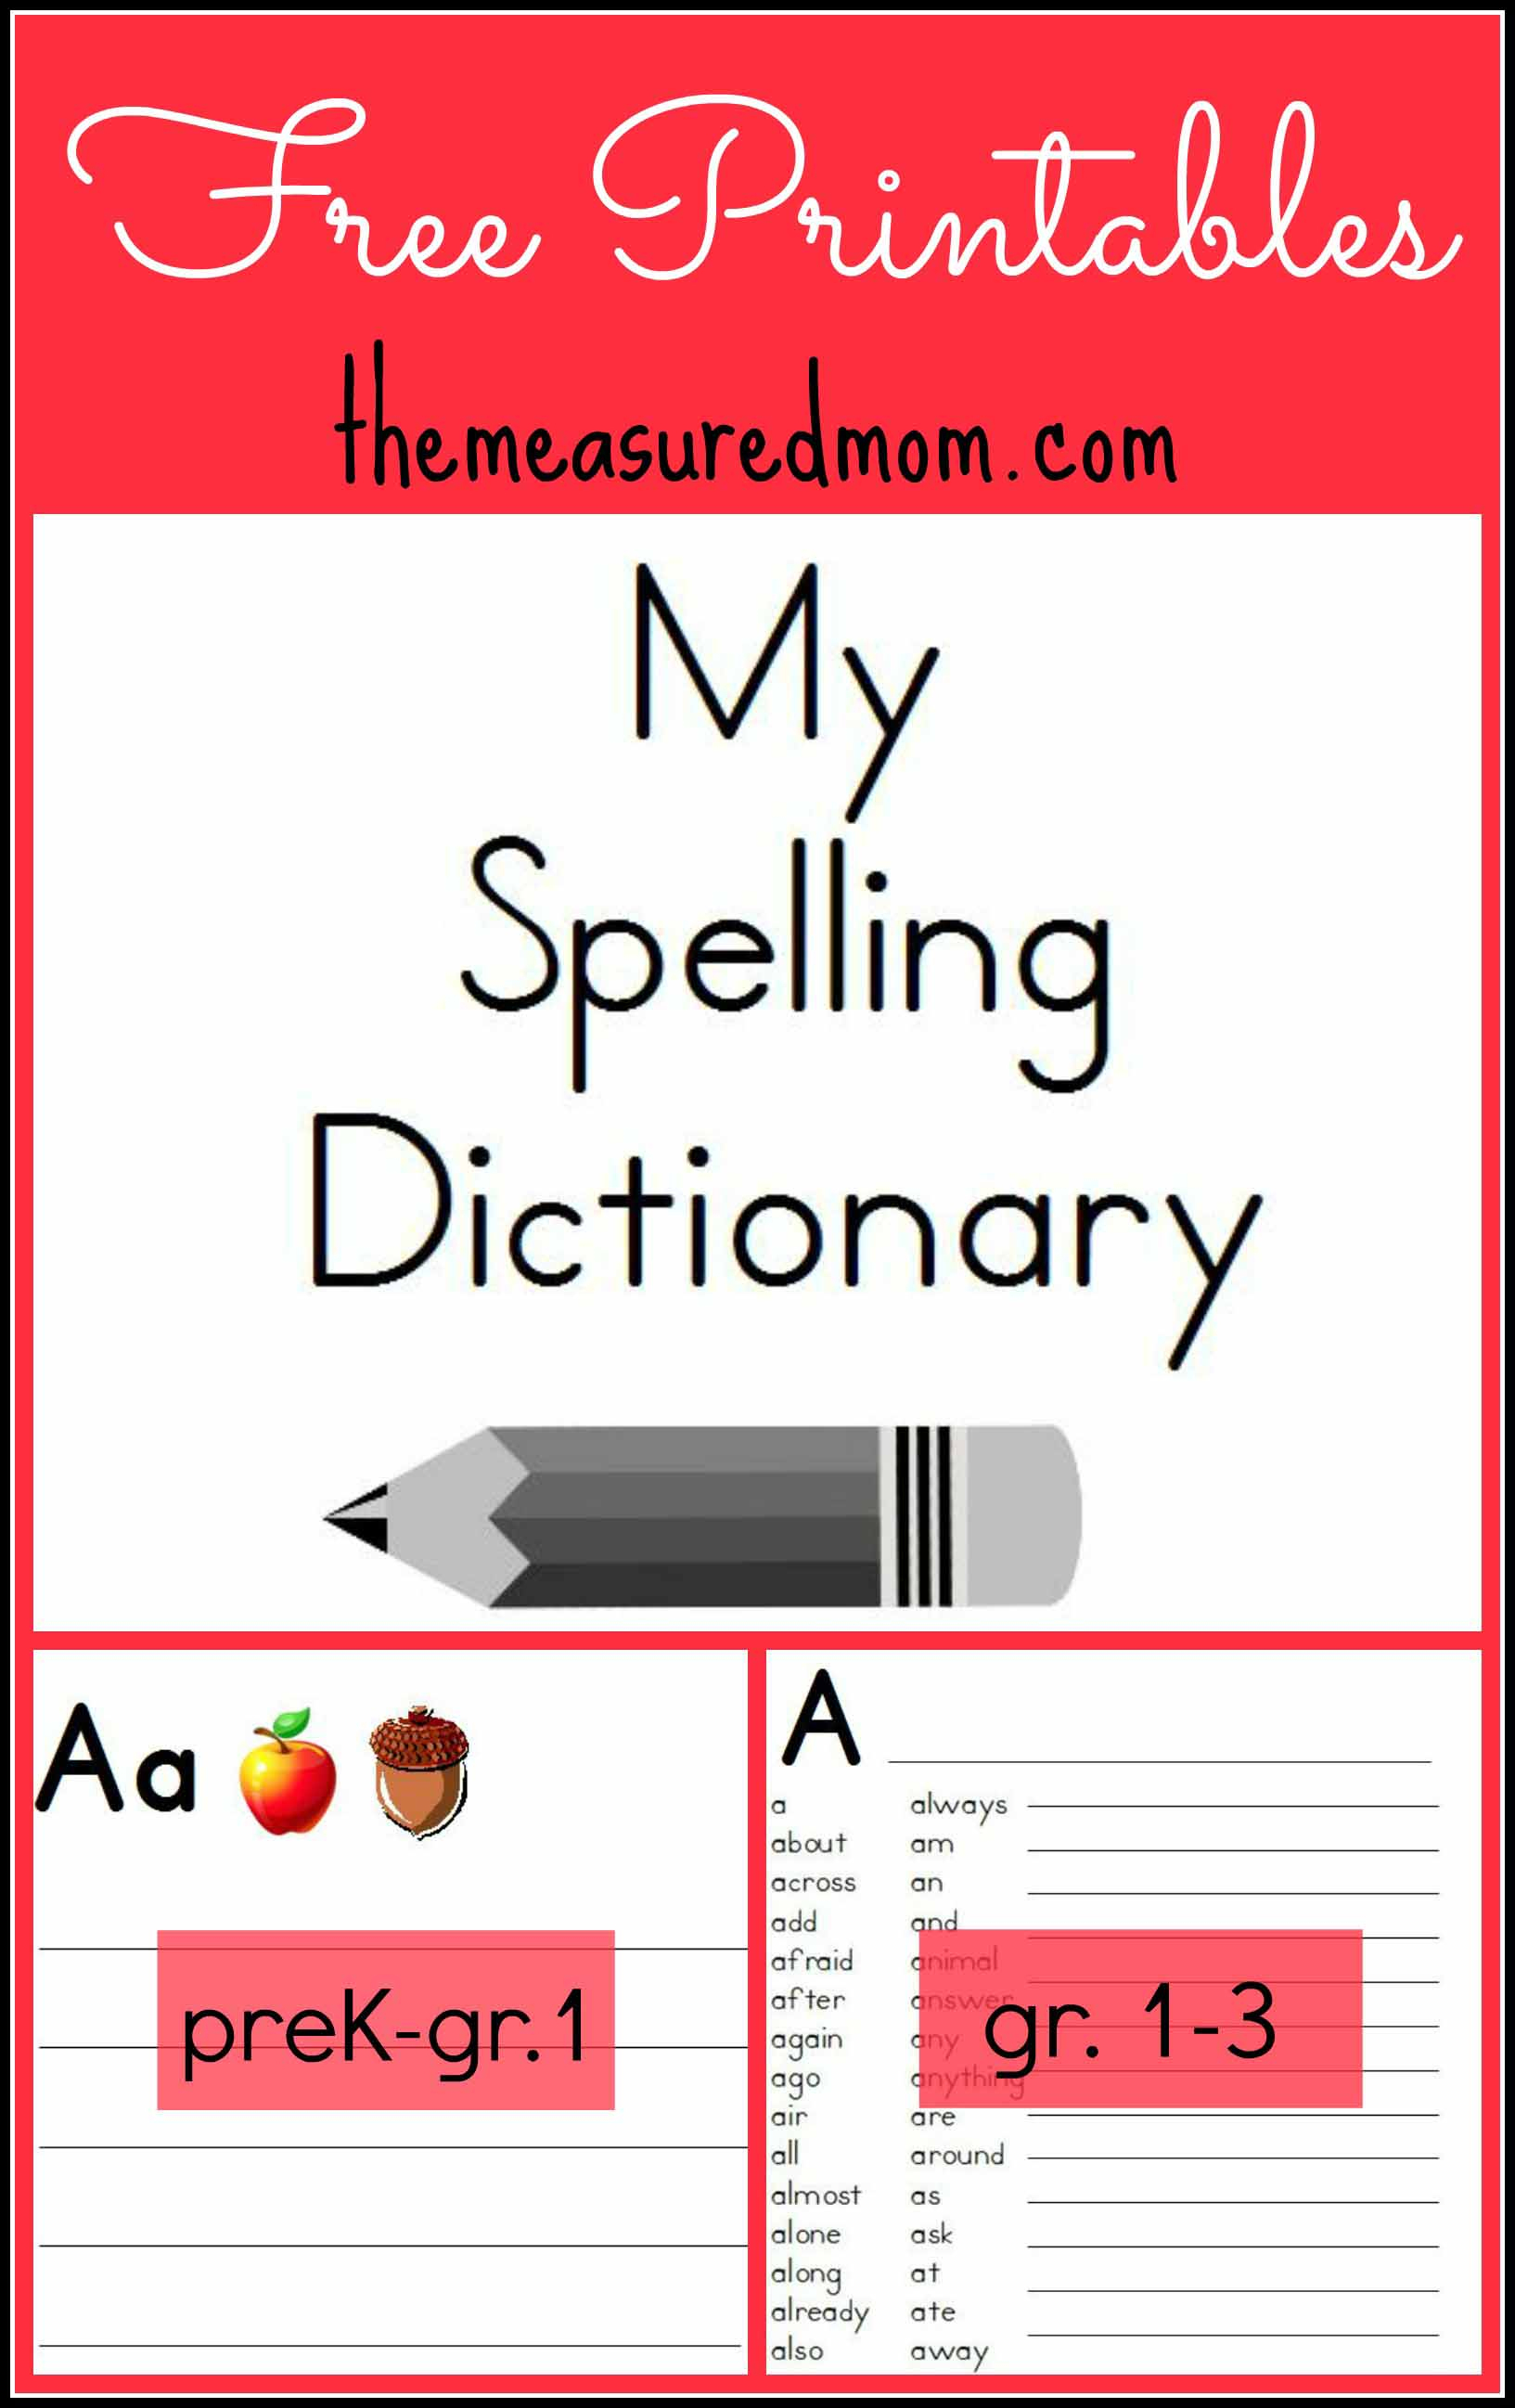 Free #printable #spelling #dictionaries - The Measured Mom021 - The - My Spelling Dictionary Printable Free